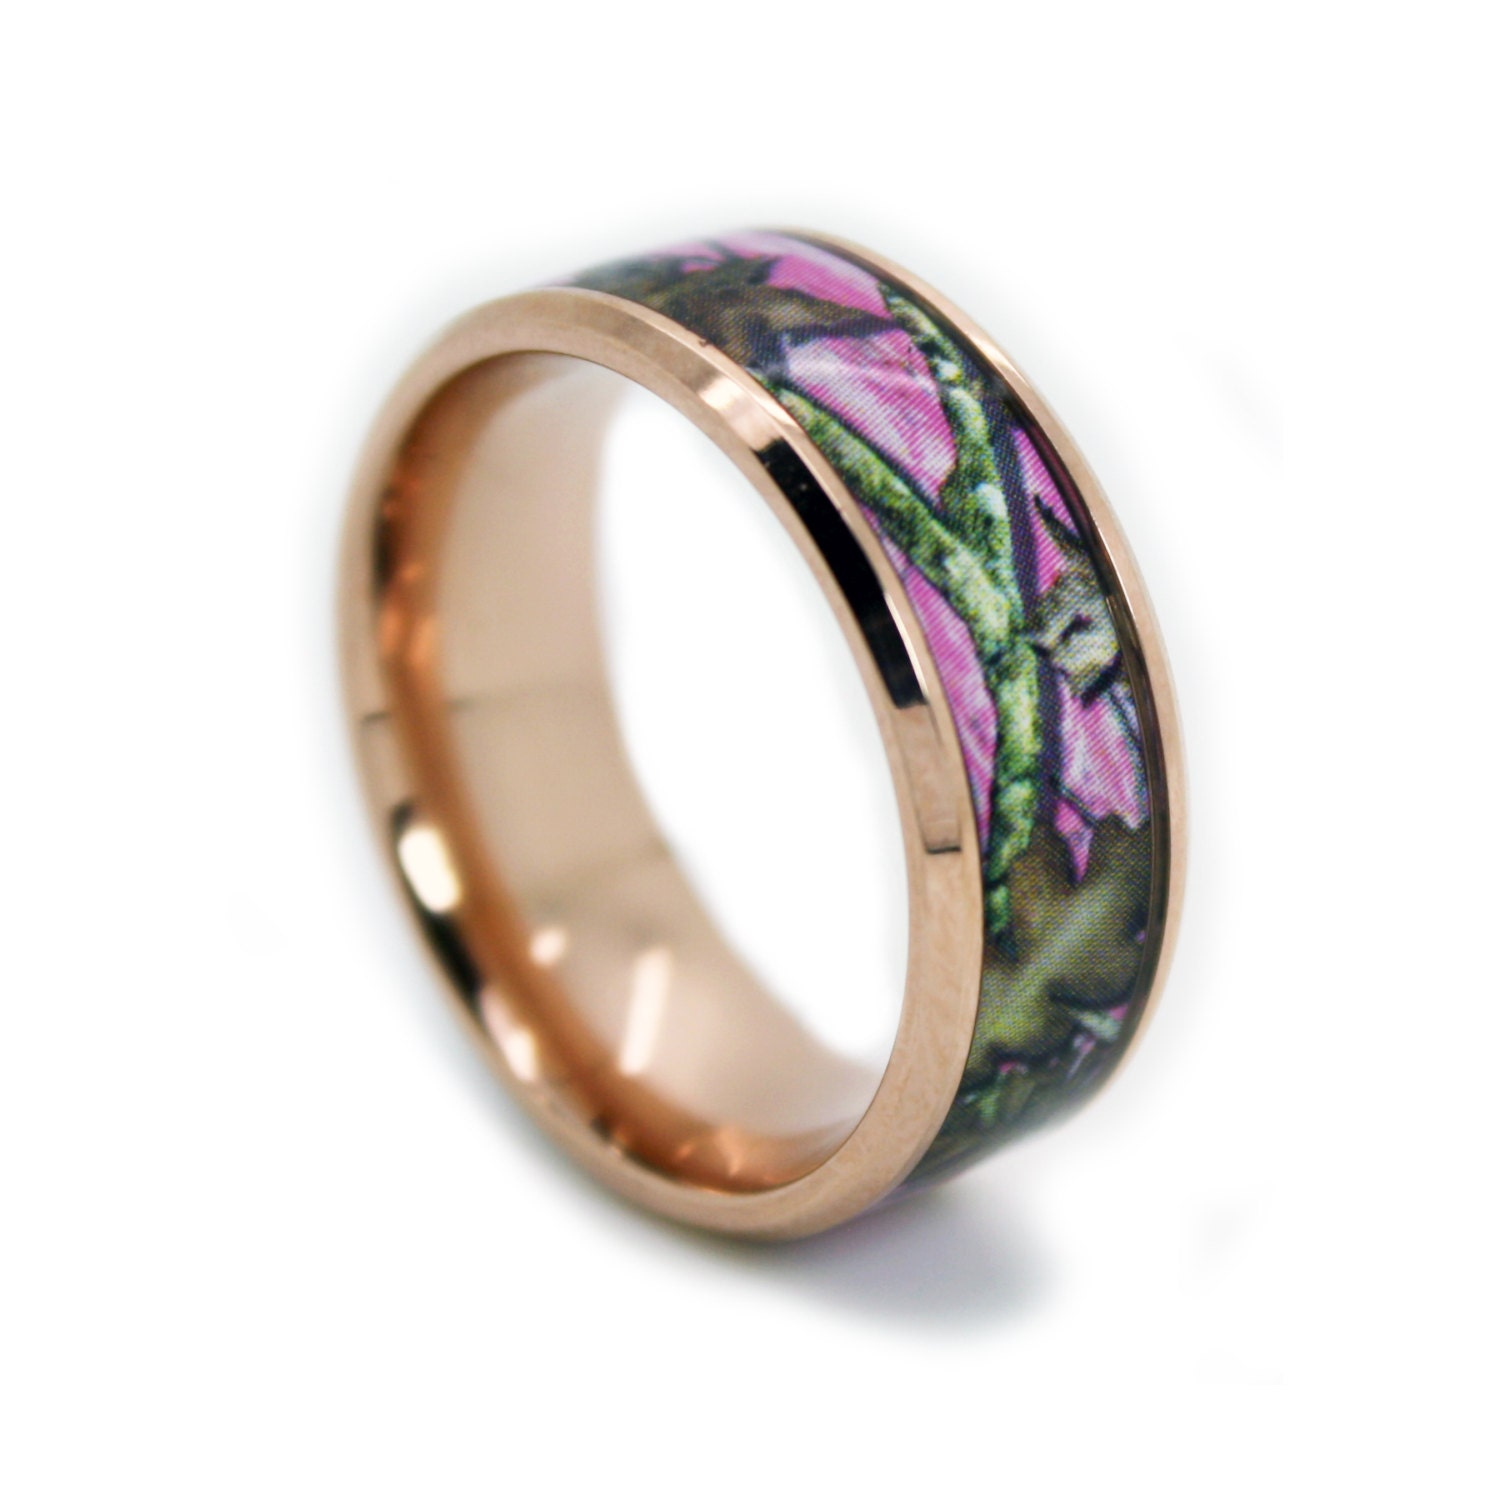 Pink Camo Wedding Rings: Pink Camo Wedding Rings By ONE CAMO Rose Gold Ring Beveled